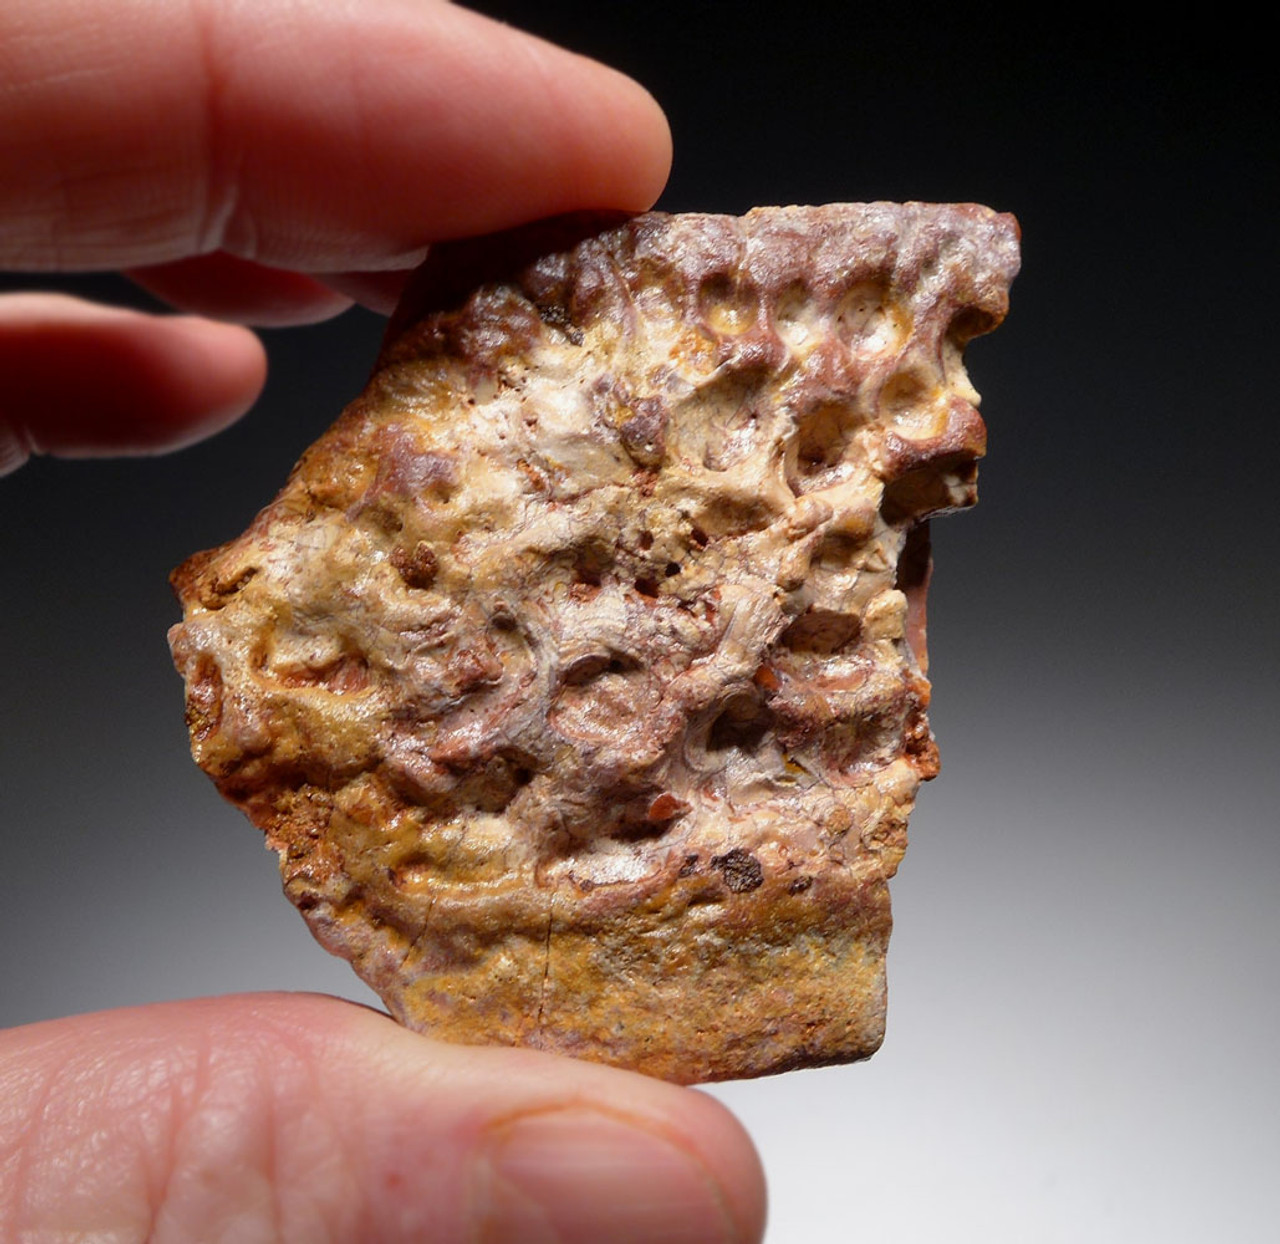 DINOSAUR-EATING CROCODILE SUPERCROC DERMAL ARMOR SCUTE FOSSIL FROM A LARGE SARCOSUCHUS IMPERATOR *CROC070